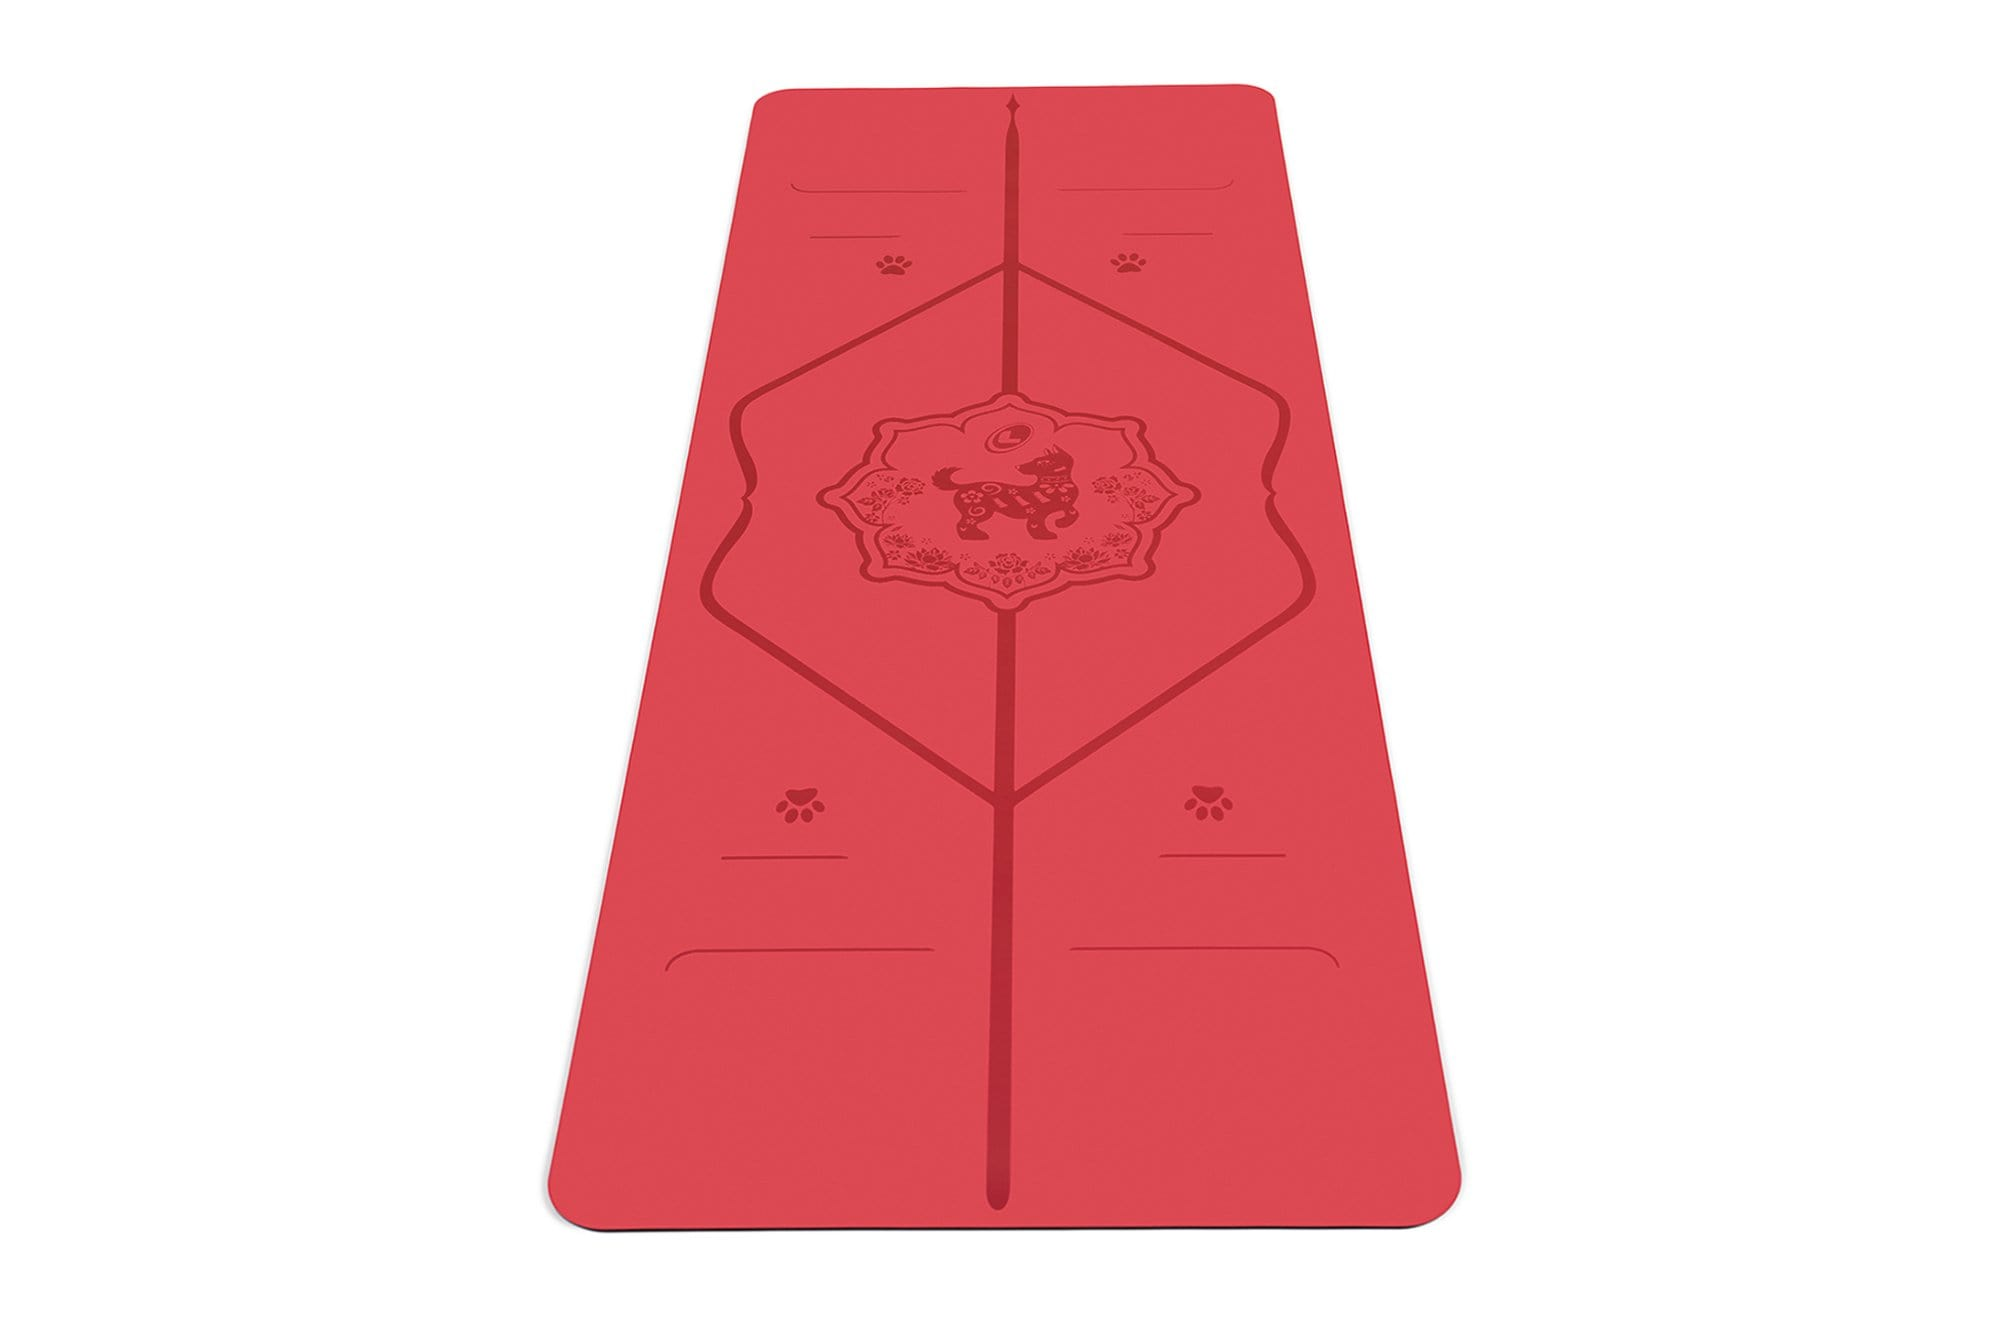 Portrait view of Year of the Dog Yoga mat from Liforme